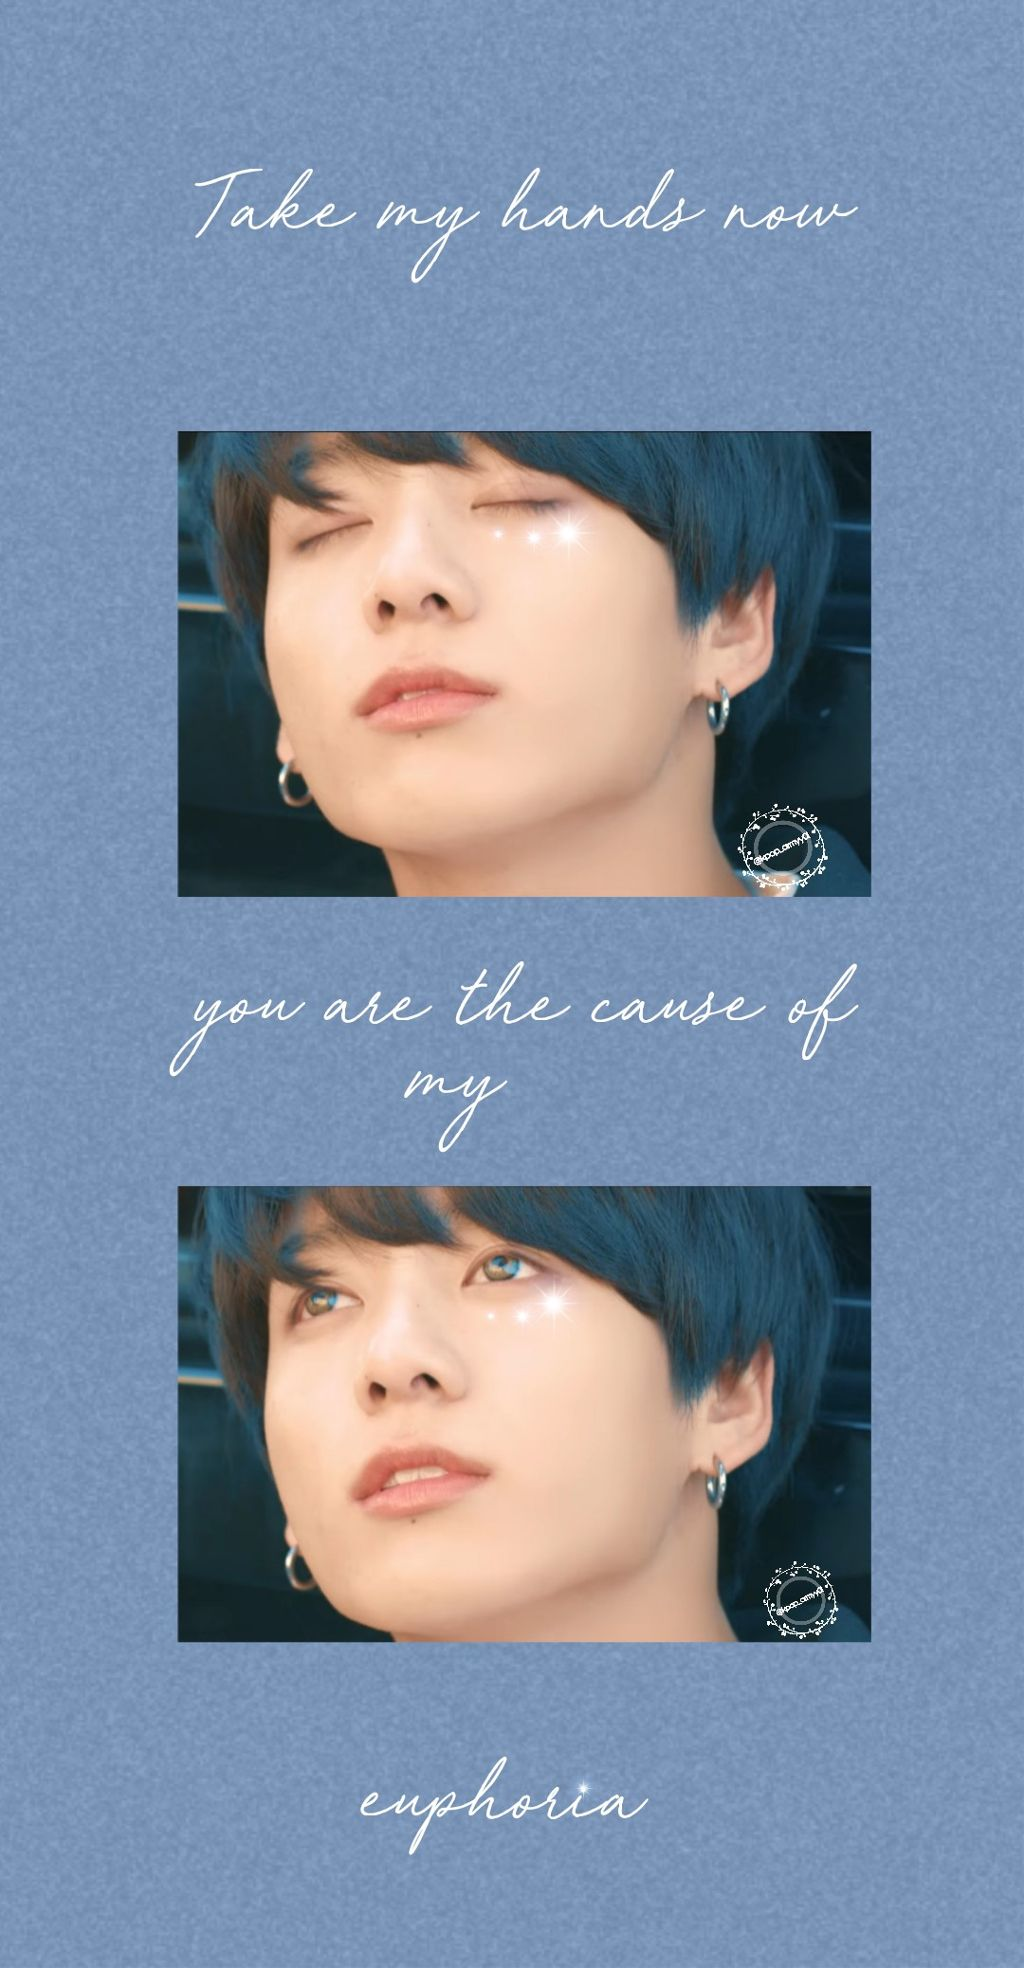 """🔒Jungkook Lockscreen🔒 🎶Lyrics from """"Euphoria"""" By: Jungkook (BTS)🎶  Did not expect bighit to drop that bomb on us like they did, but Oml Euphoria has been stuck in my head all day😍🎶 They all looked so freaking amazing, wahHh kookies vocals😍💕, so many theories, so much to analyze, and so many theory videos to watch lol and the fact that they are going back to the most beautiful moments in life era, aghhh brings back the memory of when i first got into BTS , which was in the part 2 era. Im at a loss for words, and so excited to see what more surprise bombs our boys drop on us!😆  just want to know what do you guys think about the video and what are your theory's?🤔   #bts #bangtanboys #bangtan #bangtansonyeondan #btsedit #btsjungkook #jeonjungkook #jungkook #jungkookie #kookie #euphoria #Btseuphoria #justinseagull #kook #jungkookie #kpop #kpopedit #kpopaesthetic #jungkooklockscreen #lockscreen #kpoplockscreen"""